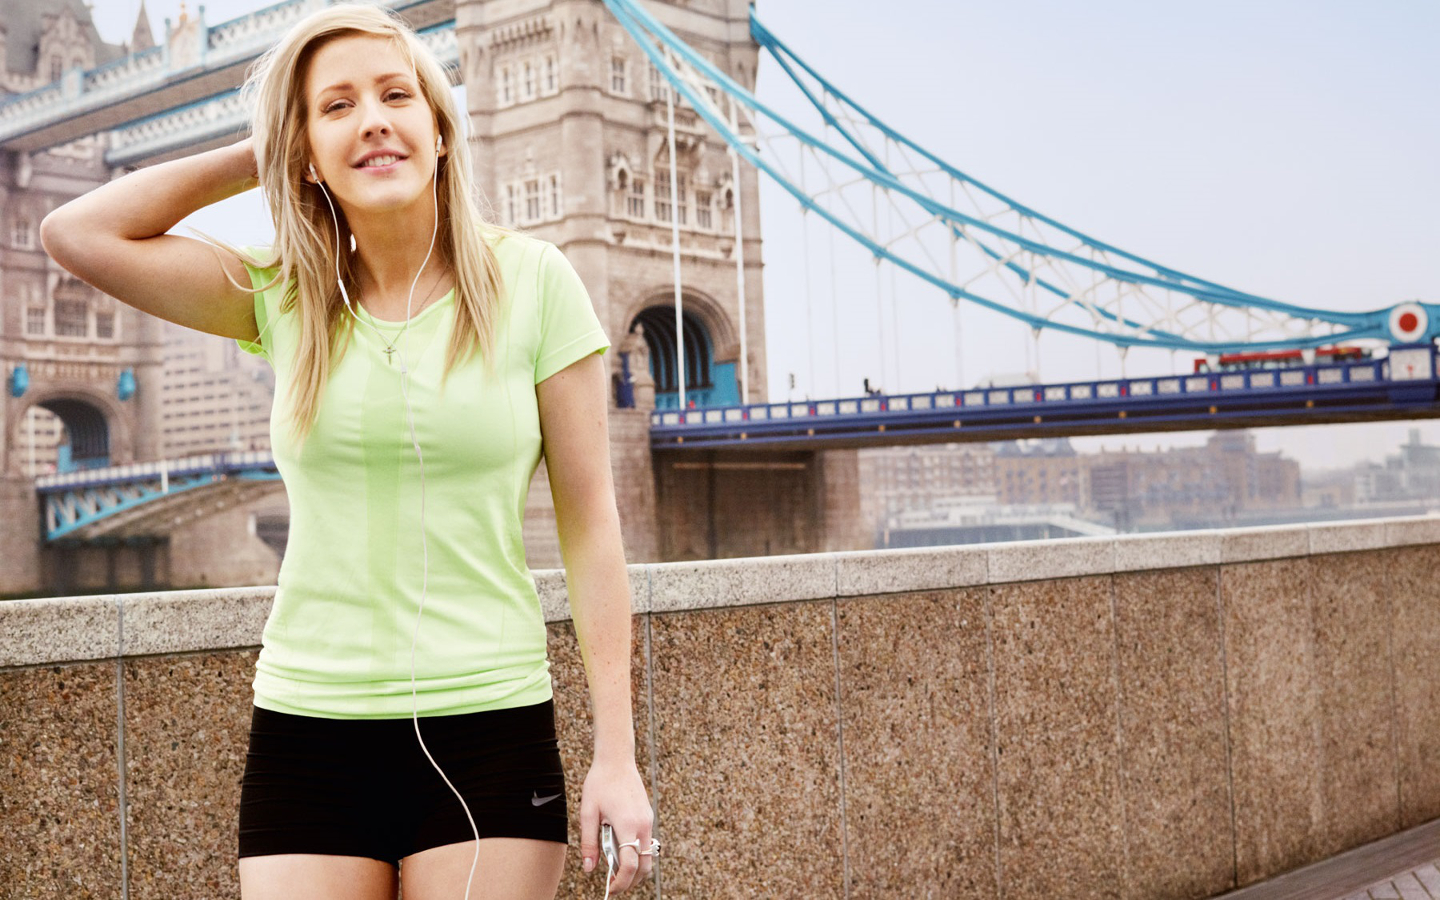 Ellie Goulding Images Keeping It Fit HD Wallpaper And Background Photos